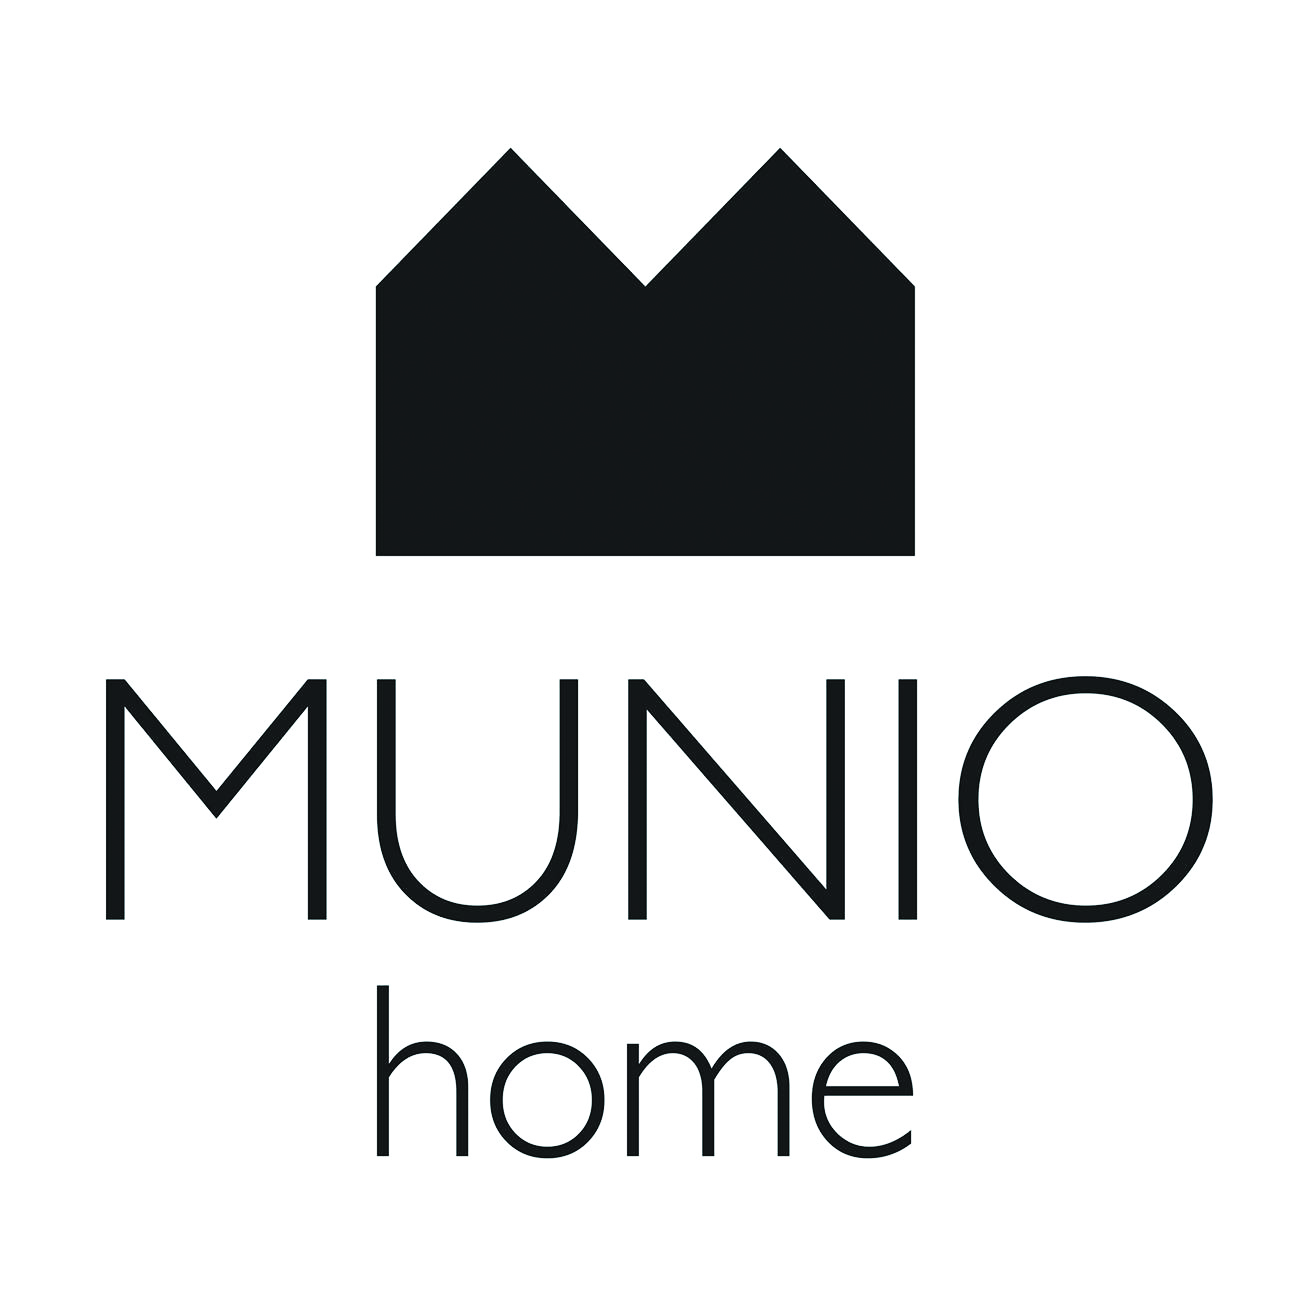 LOGO_Munio Home jpg (1)